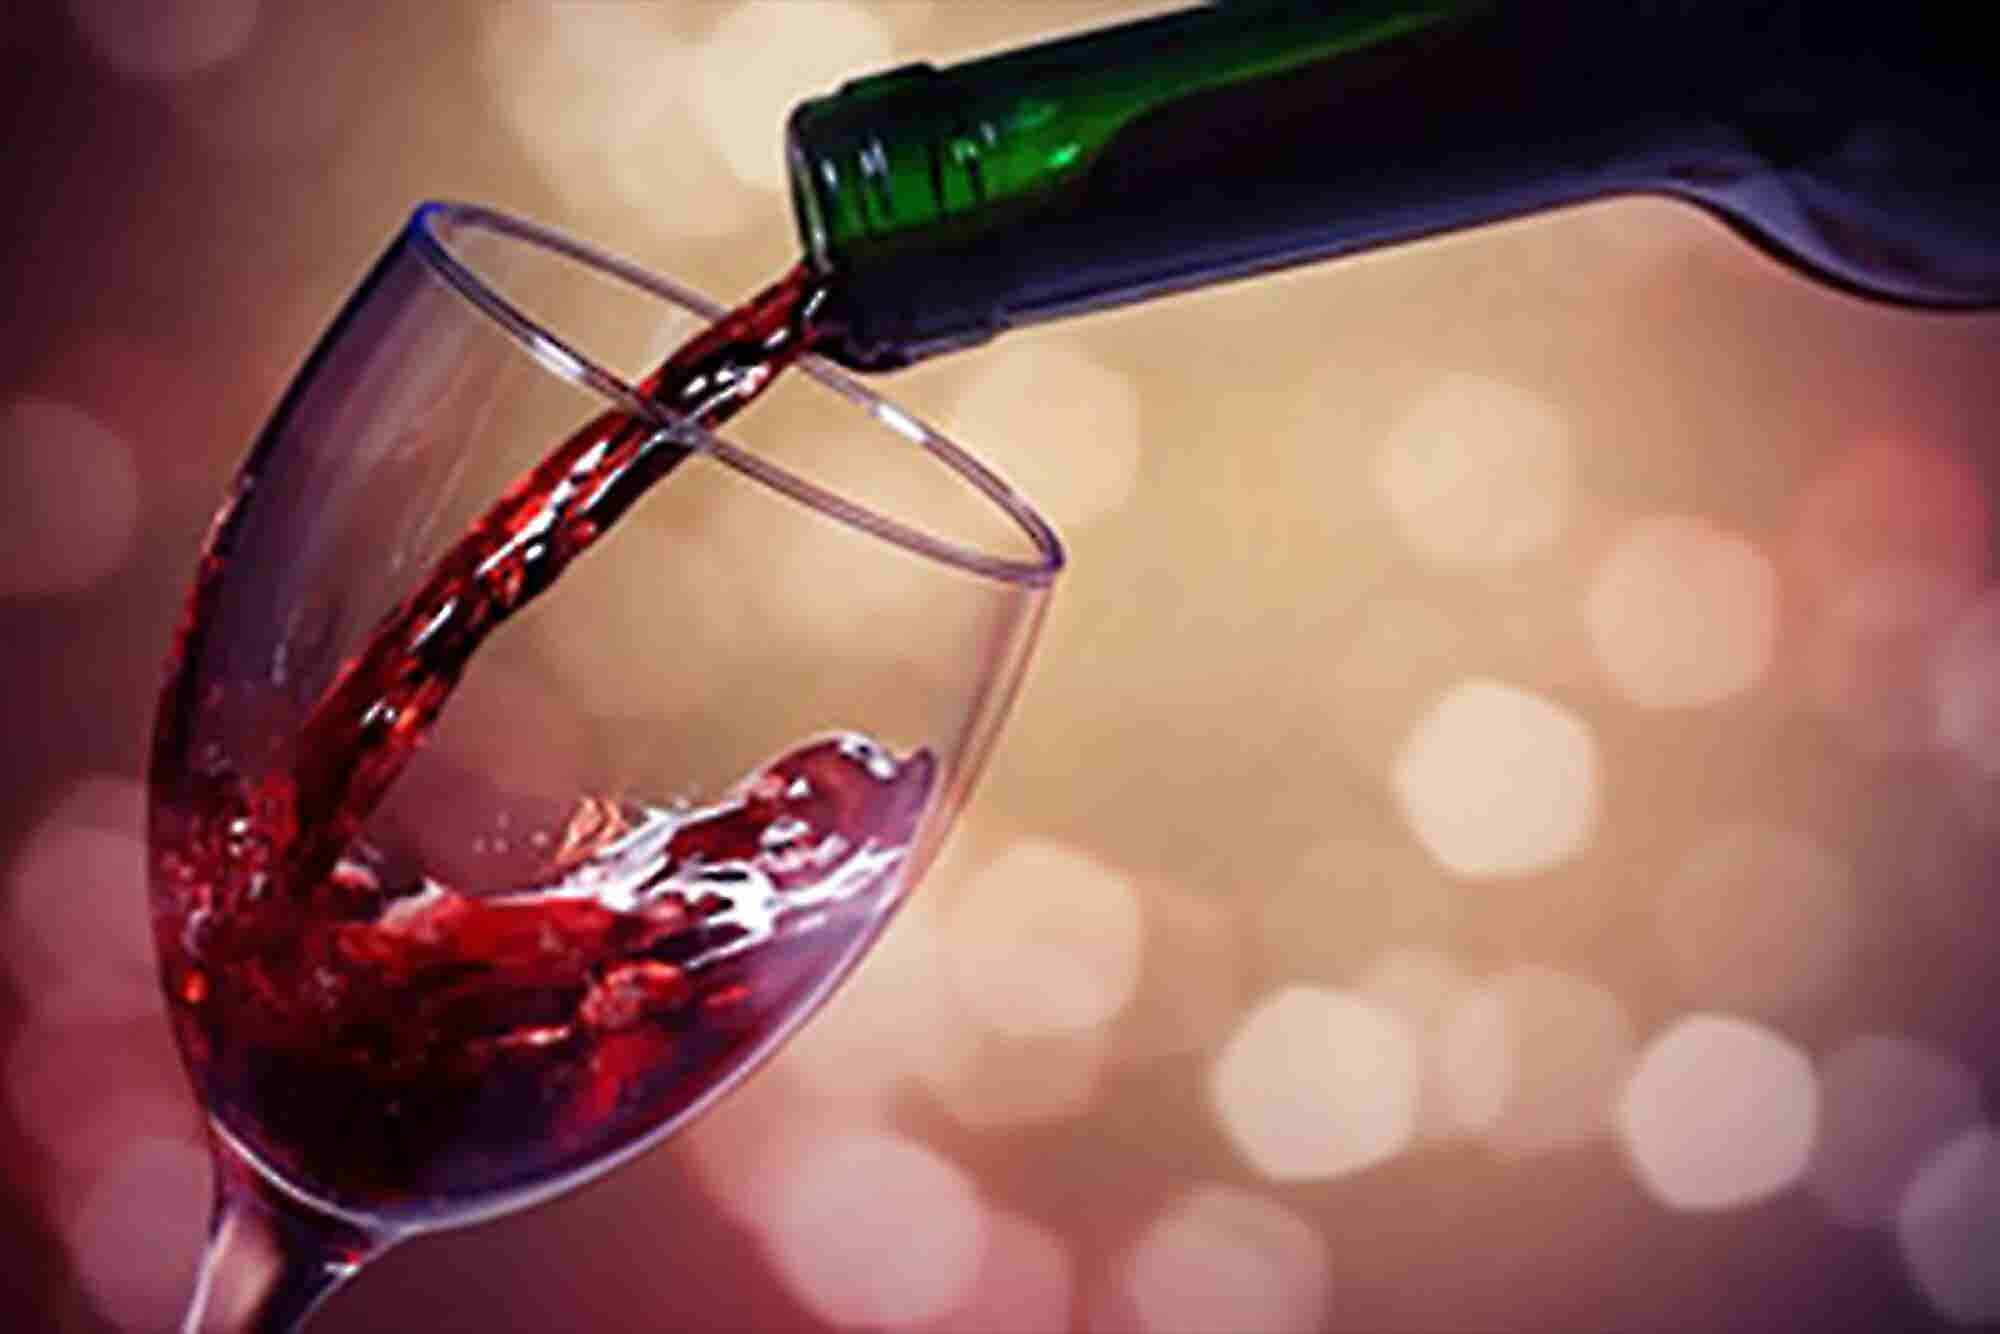 Wining and Dining to Grow Your Business and Brand